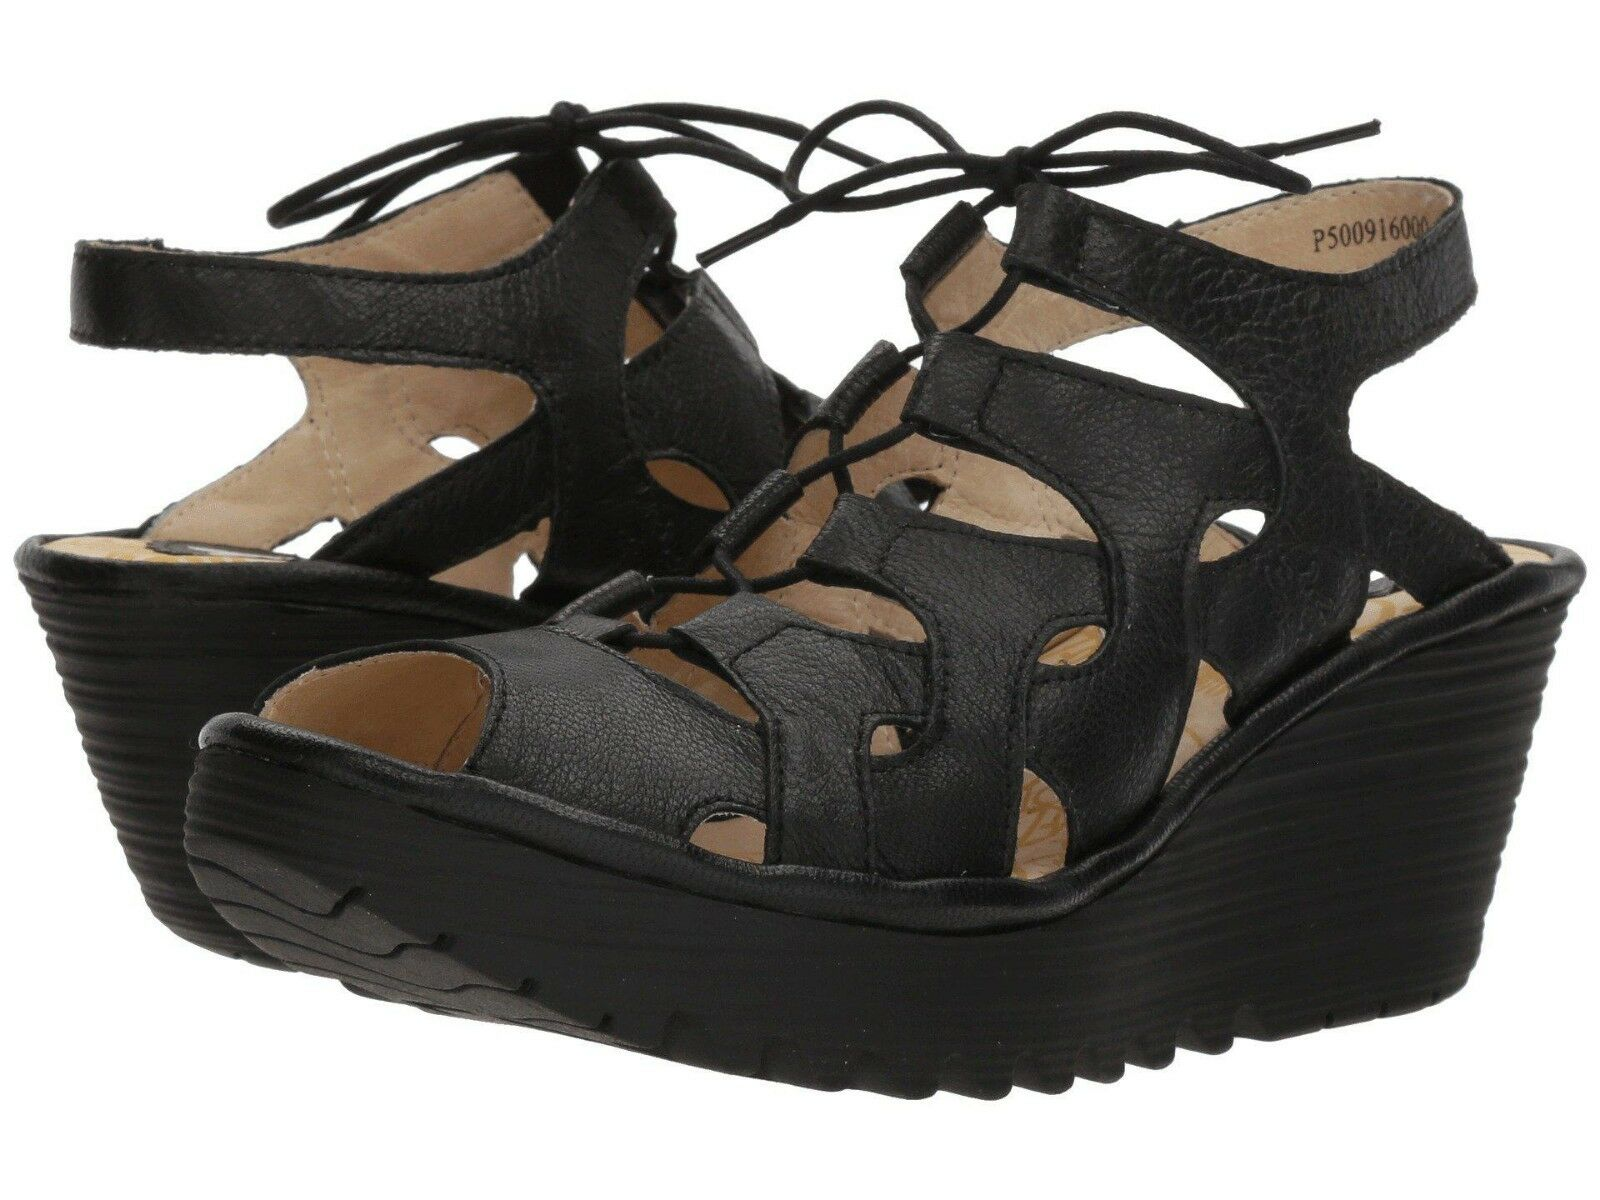 FLY LONDON Donna YEXA916FLY, WALKING COMFY PLATFORM WEDGE, LACE SANDAL